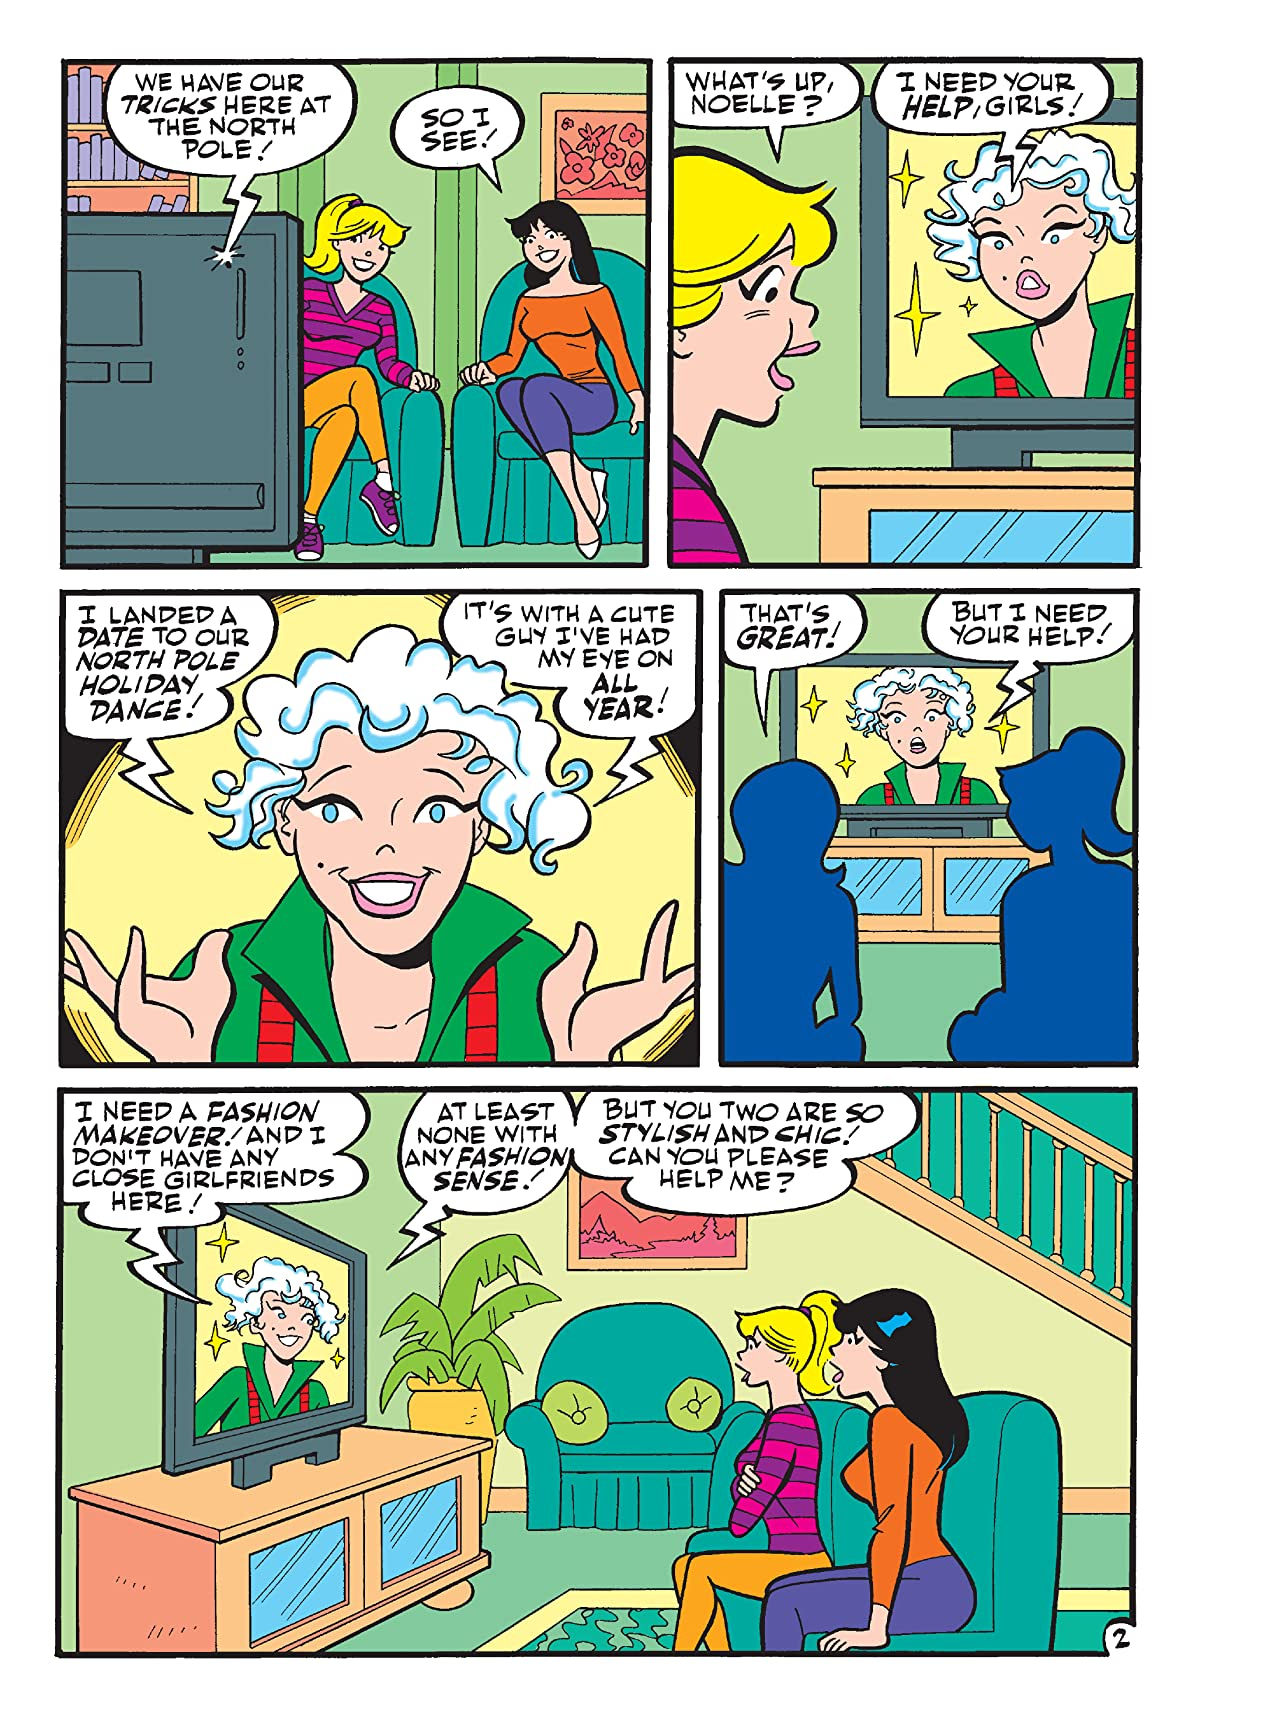 World of Archie Double Digest #105